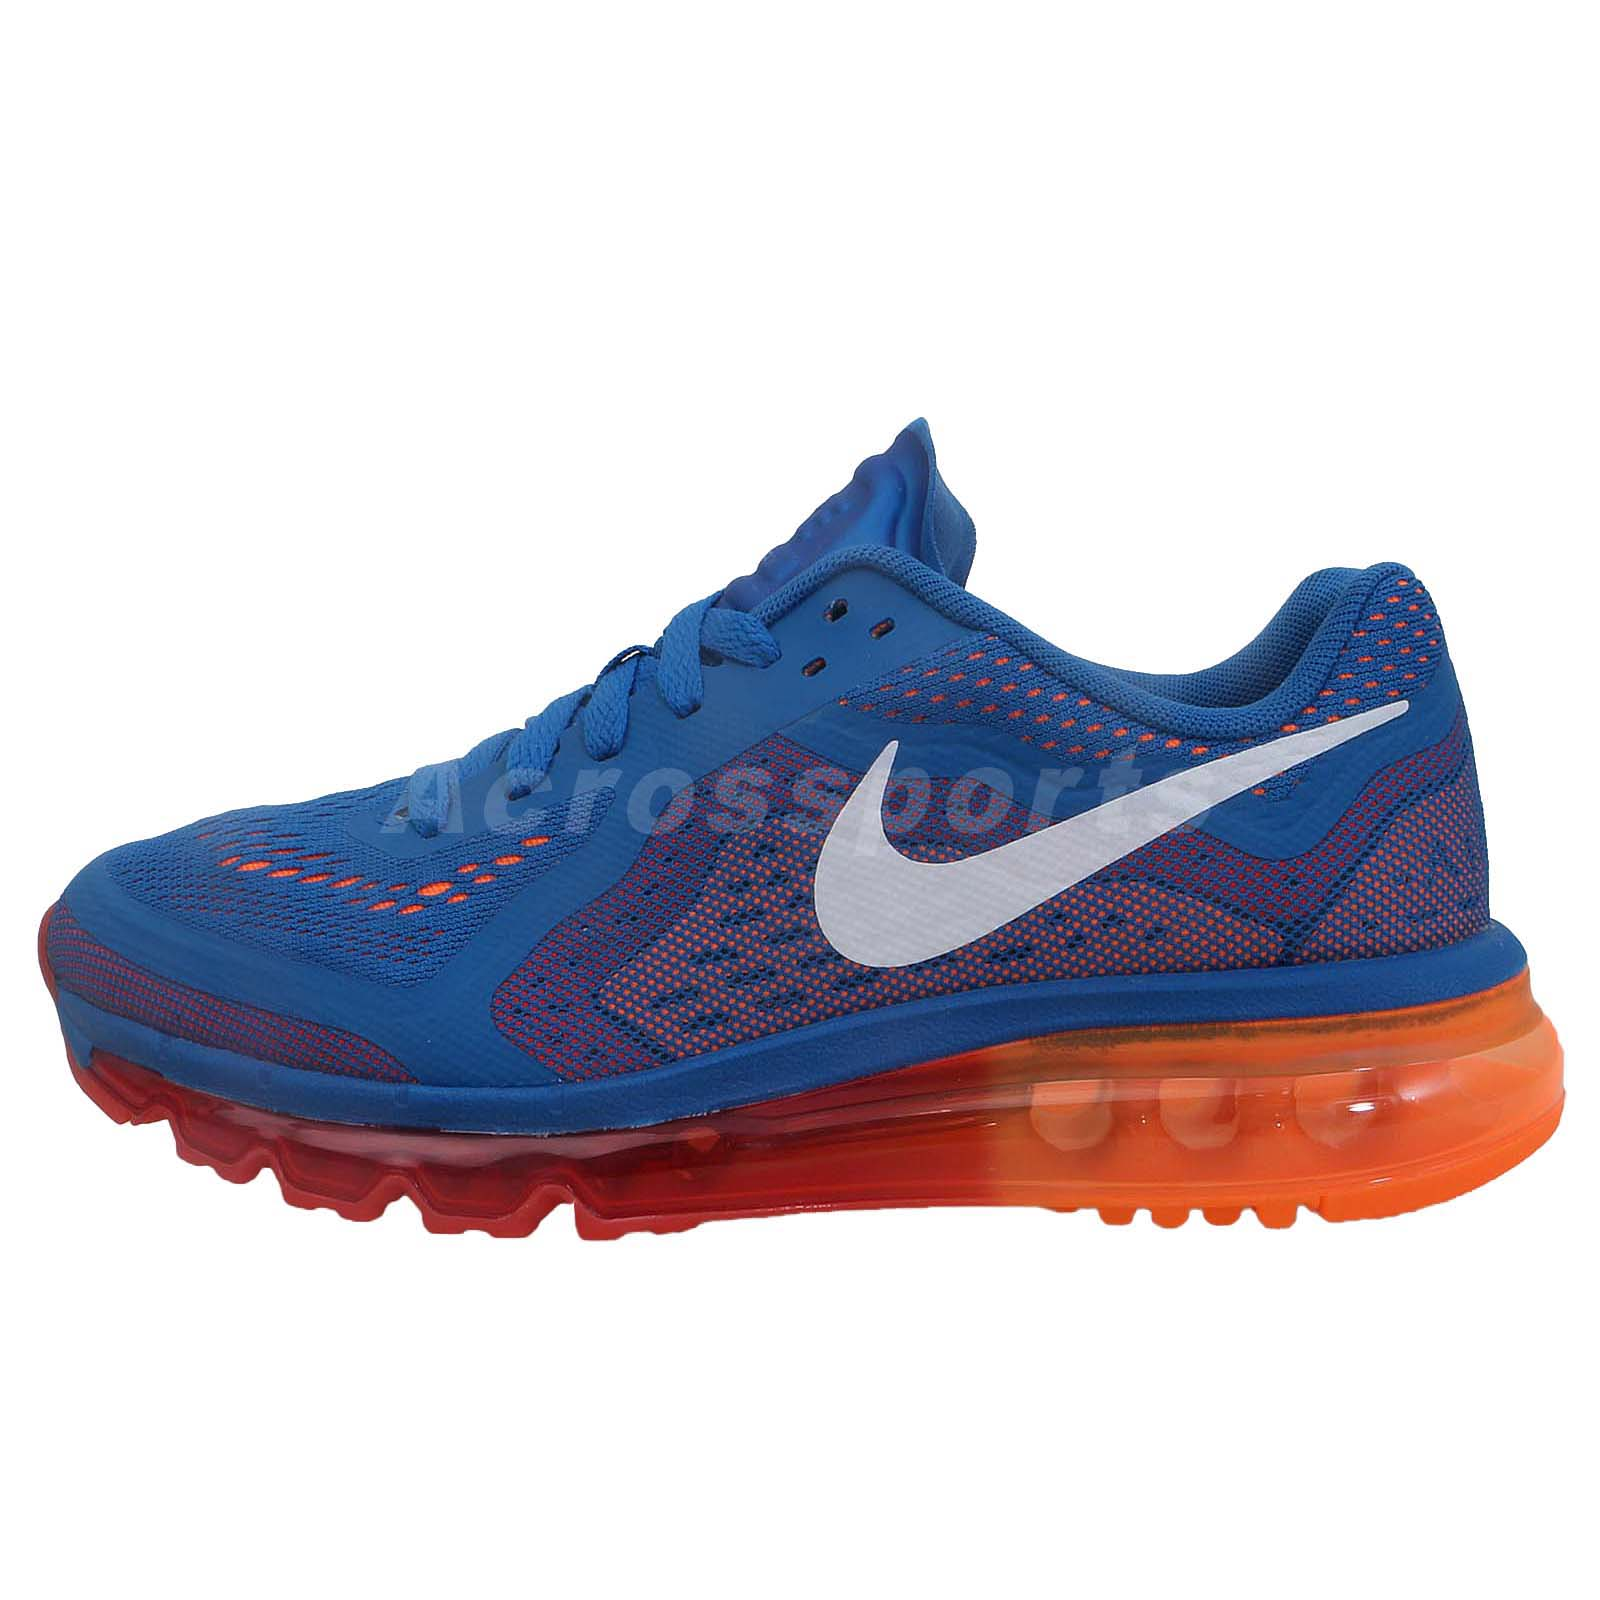 boys bright orange nike shoes Shop a large variety of the coolest bright green women orange nike shoes and lime green Nike ae shoes for the entire family at DICK'S Sporting Goods. Free shipping BOTH ways on Nike, from our vast selection of styles.